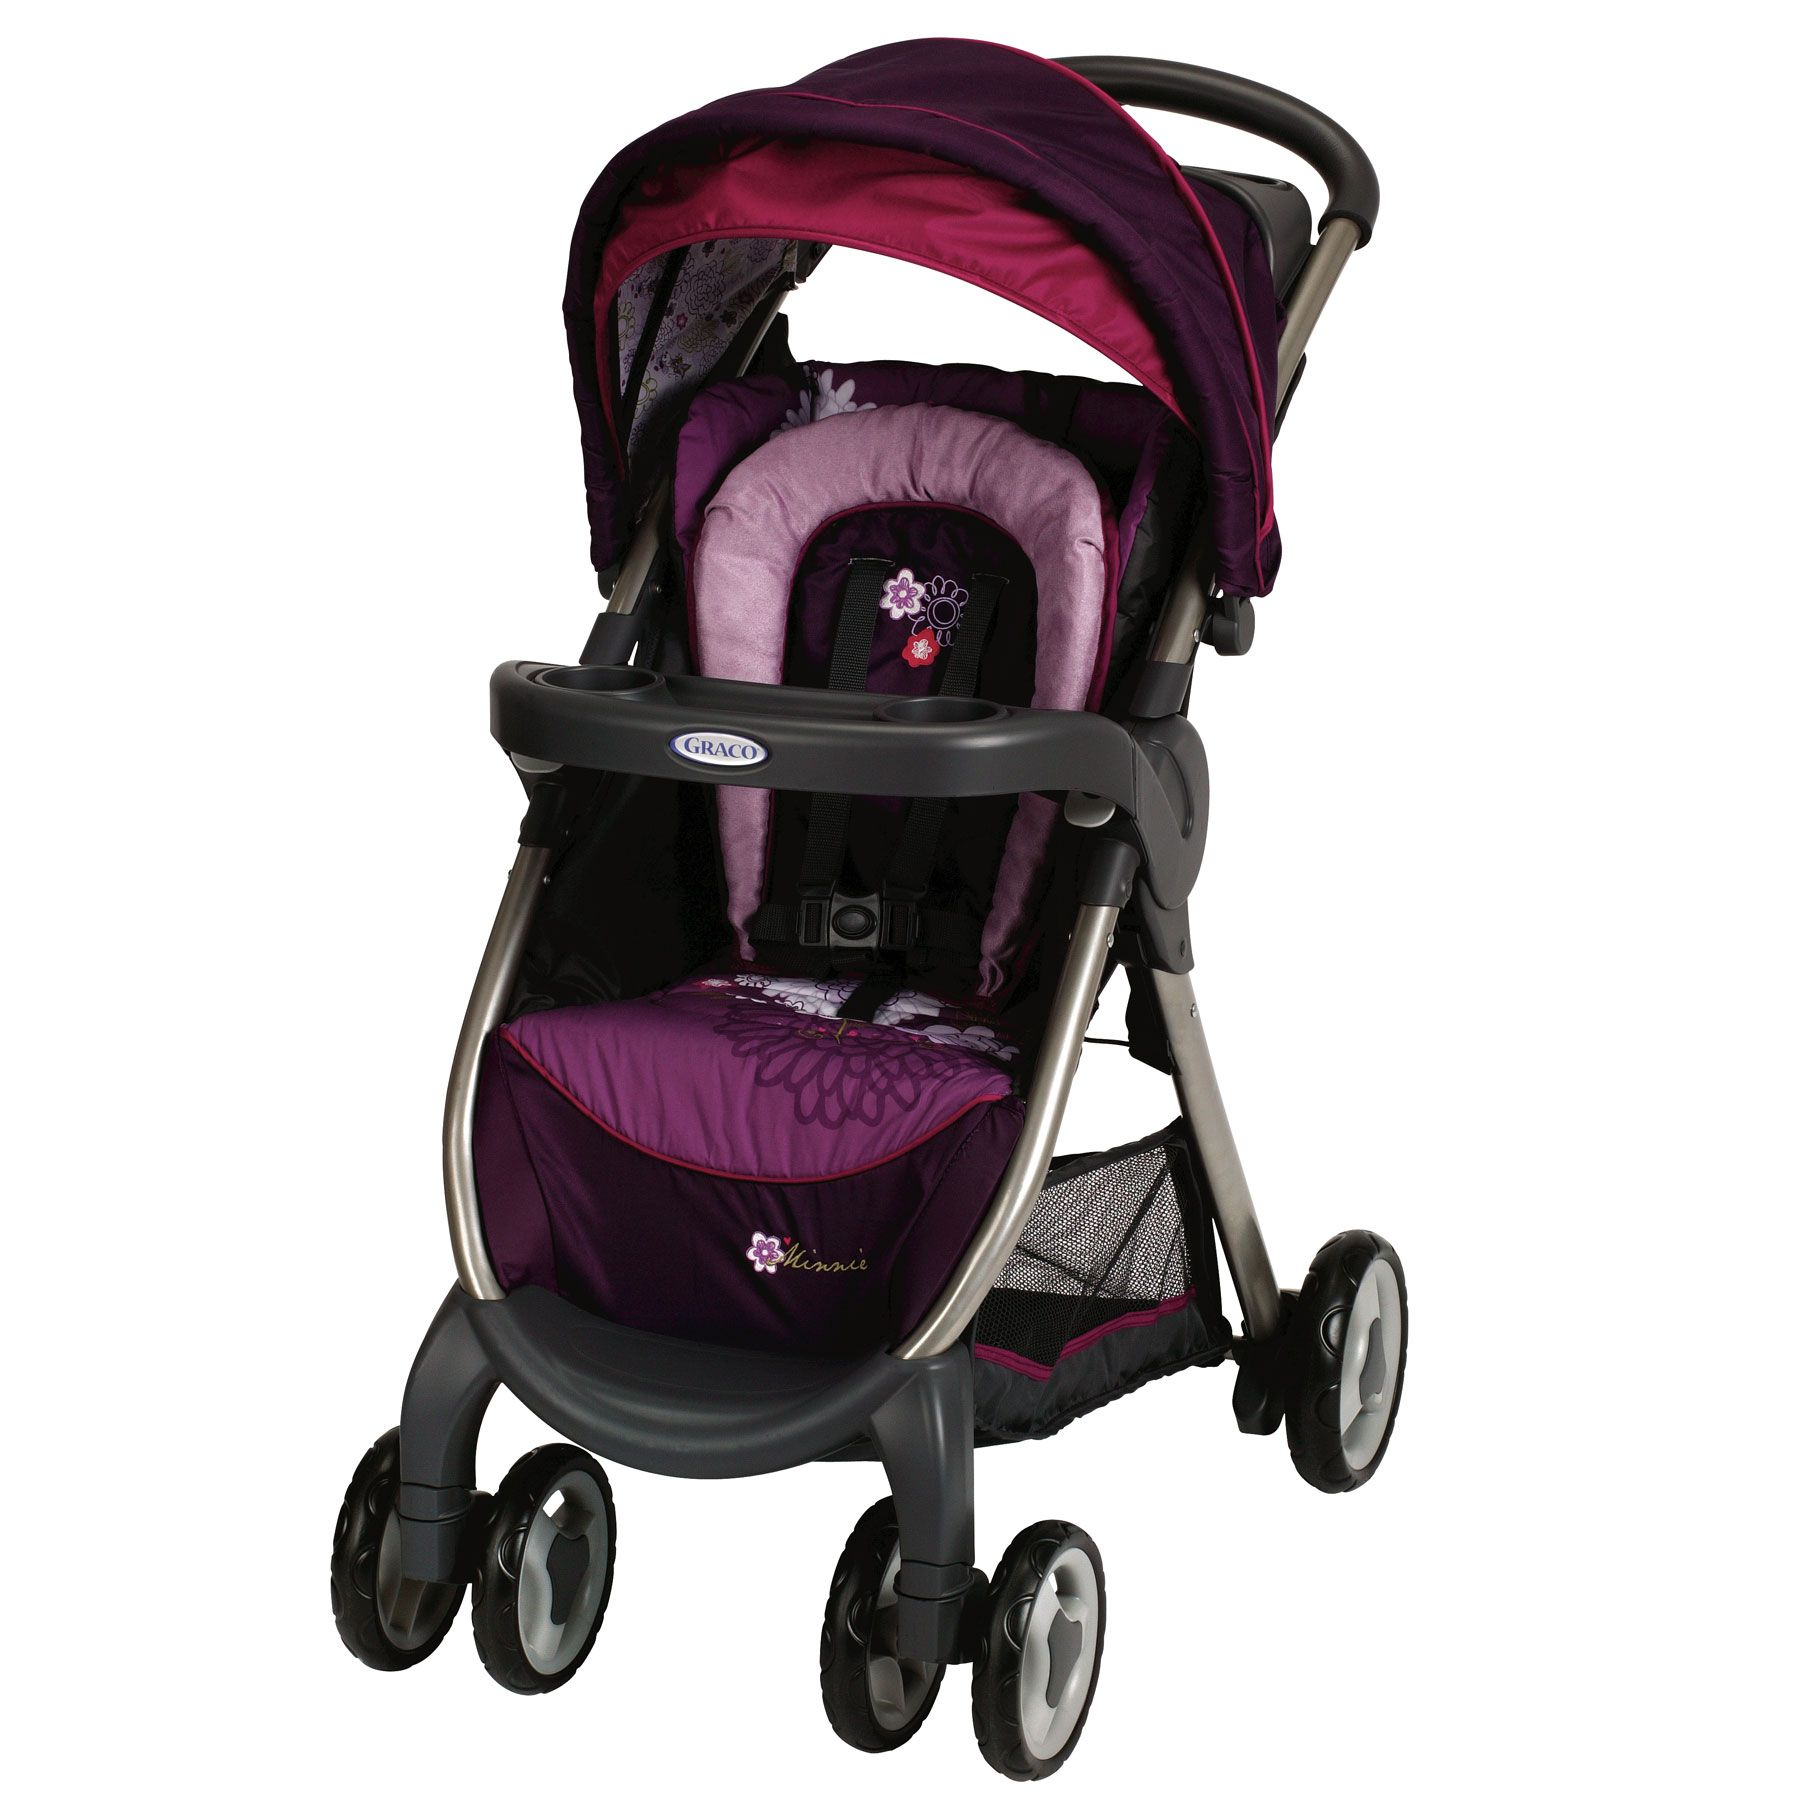 I want this to be the stroller we get AFTER Anna outgrows